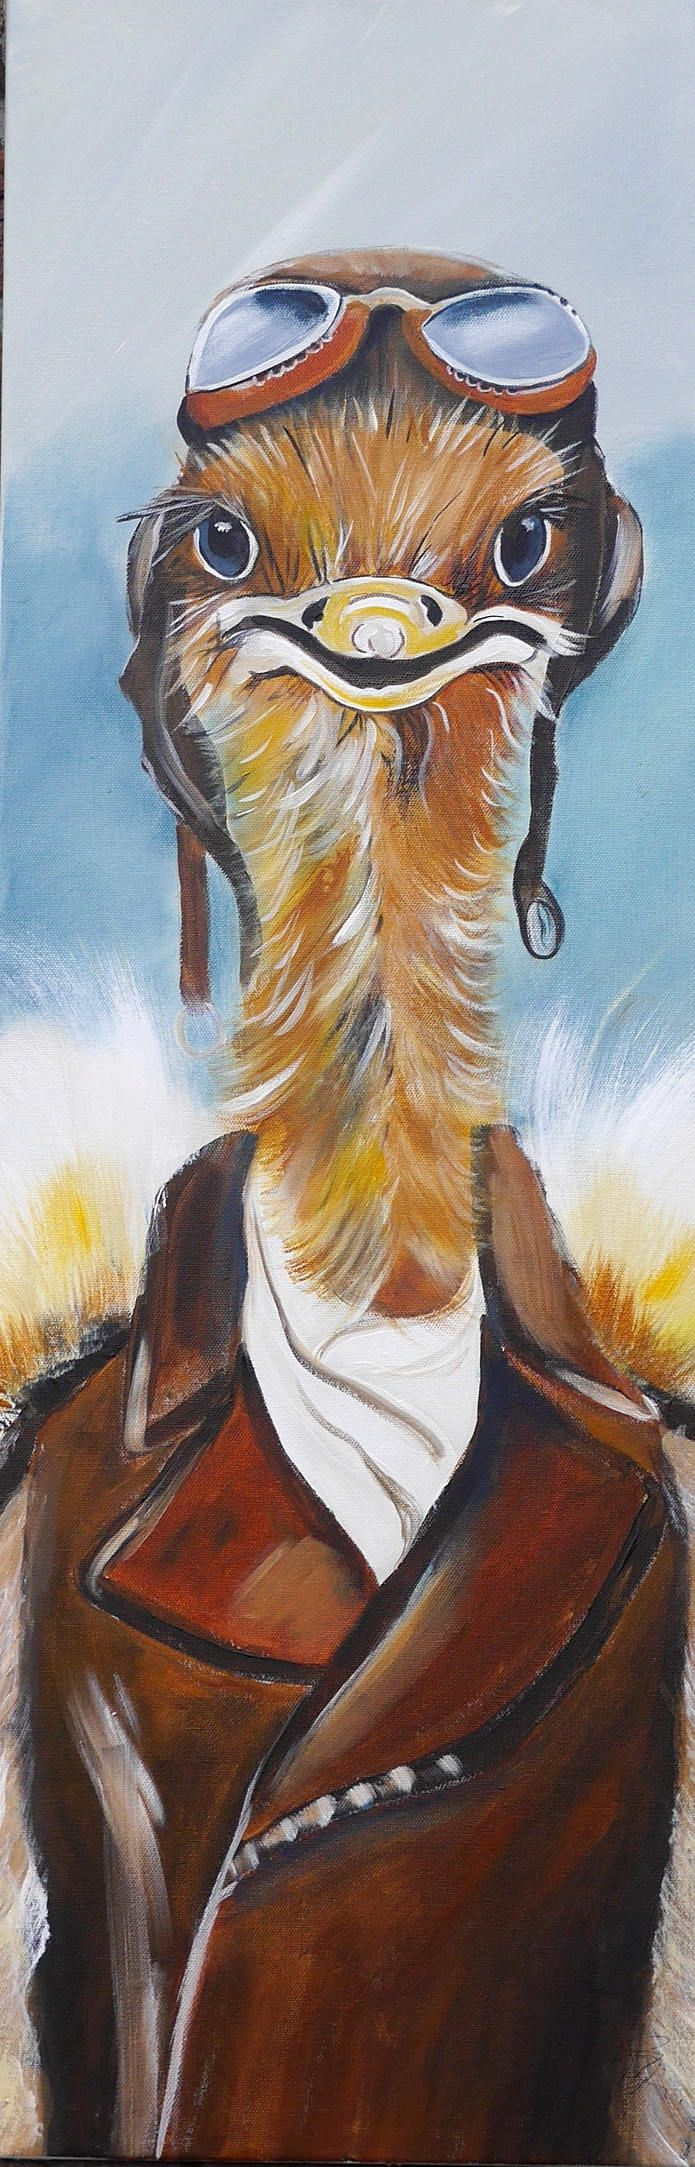 Medium acrylic painting,ostrich,pilot,Braun,blau,Straussenvogel,Vogel,lustig,sunglasses,Brille,Bruchpilot by Beate Frieling by ColorbyBeate on Etsy